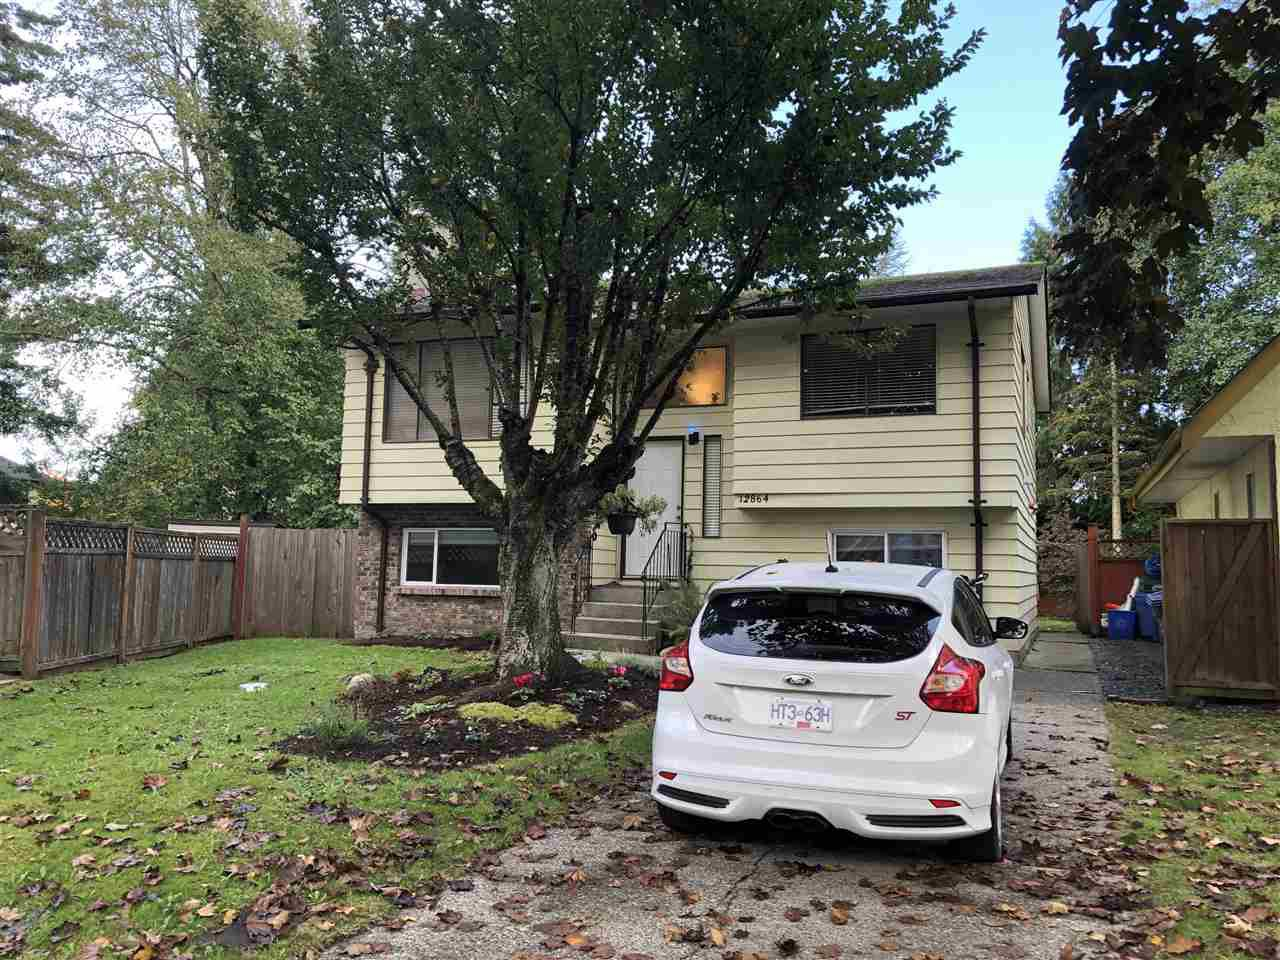 """Main Photo: 12864 67B Avenue in Surrey: West Newton House for sale in """"Newton"""" : MLS®# R2511069"""